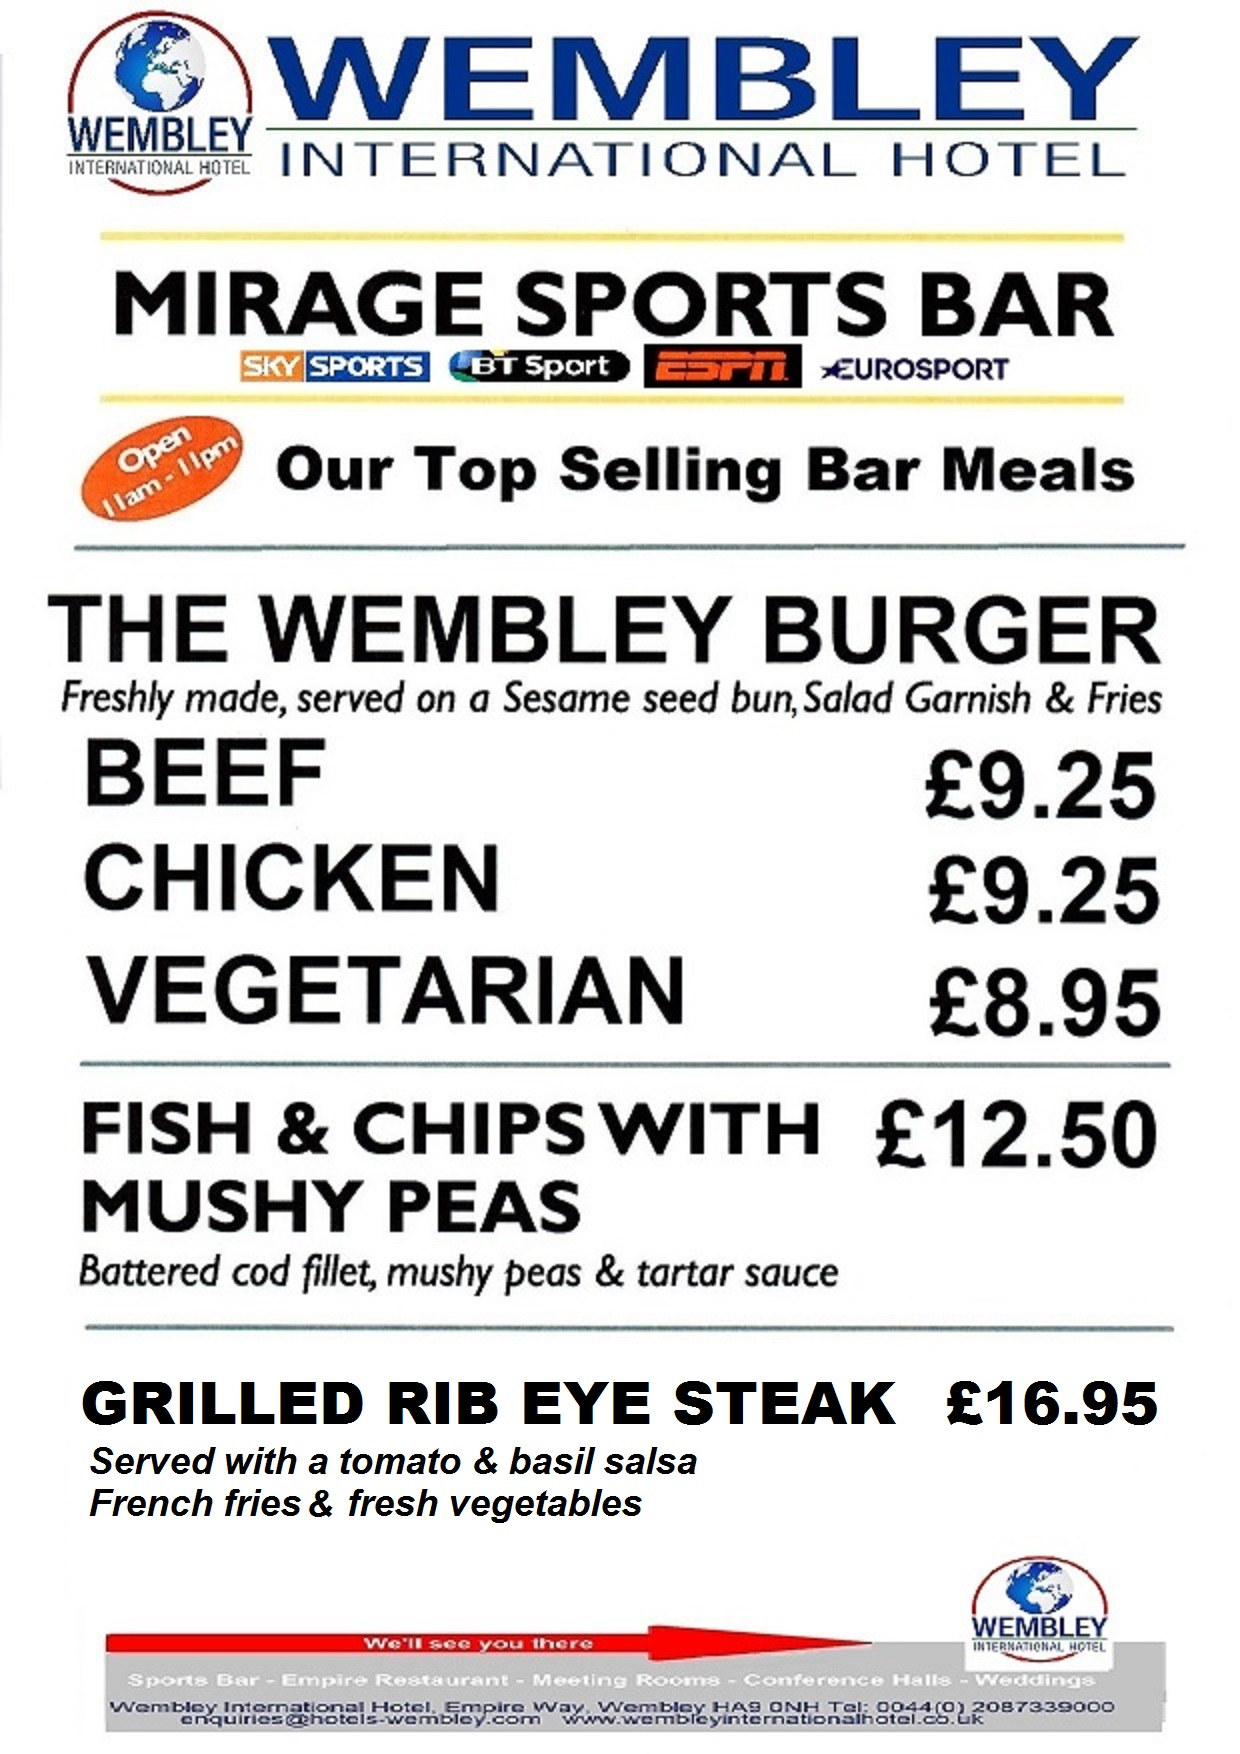 WEMBLEY MIRAGE SPORTS BAR